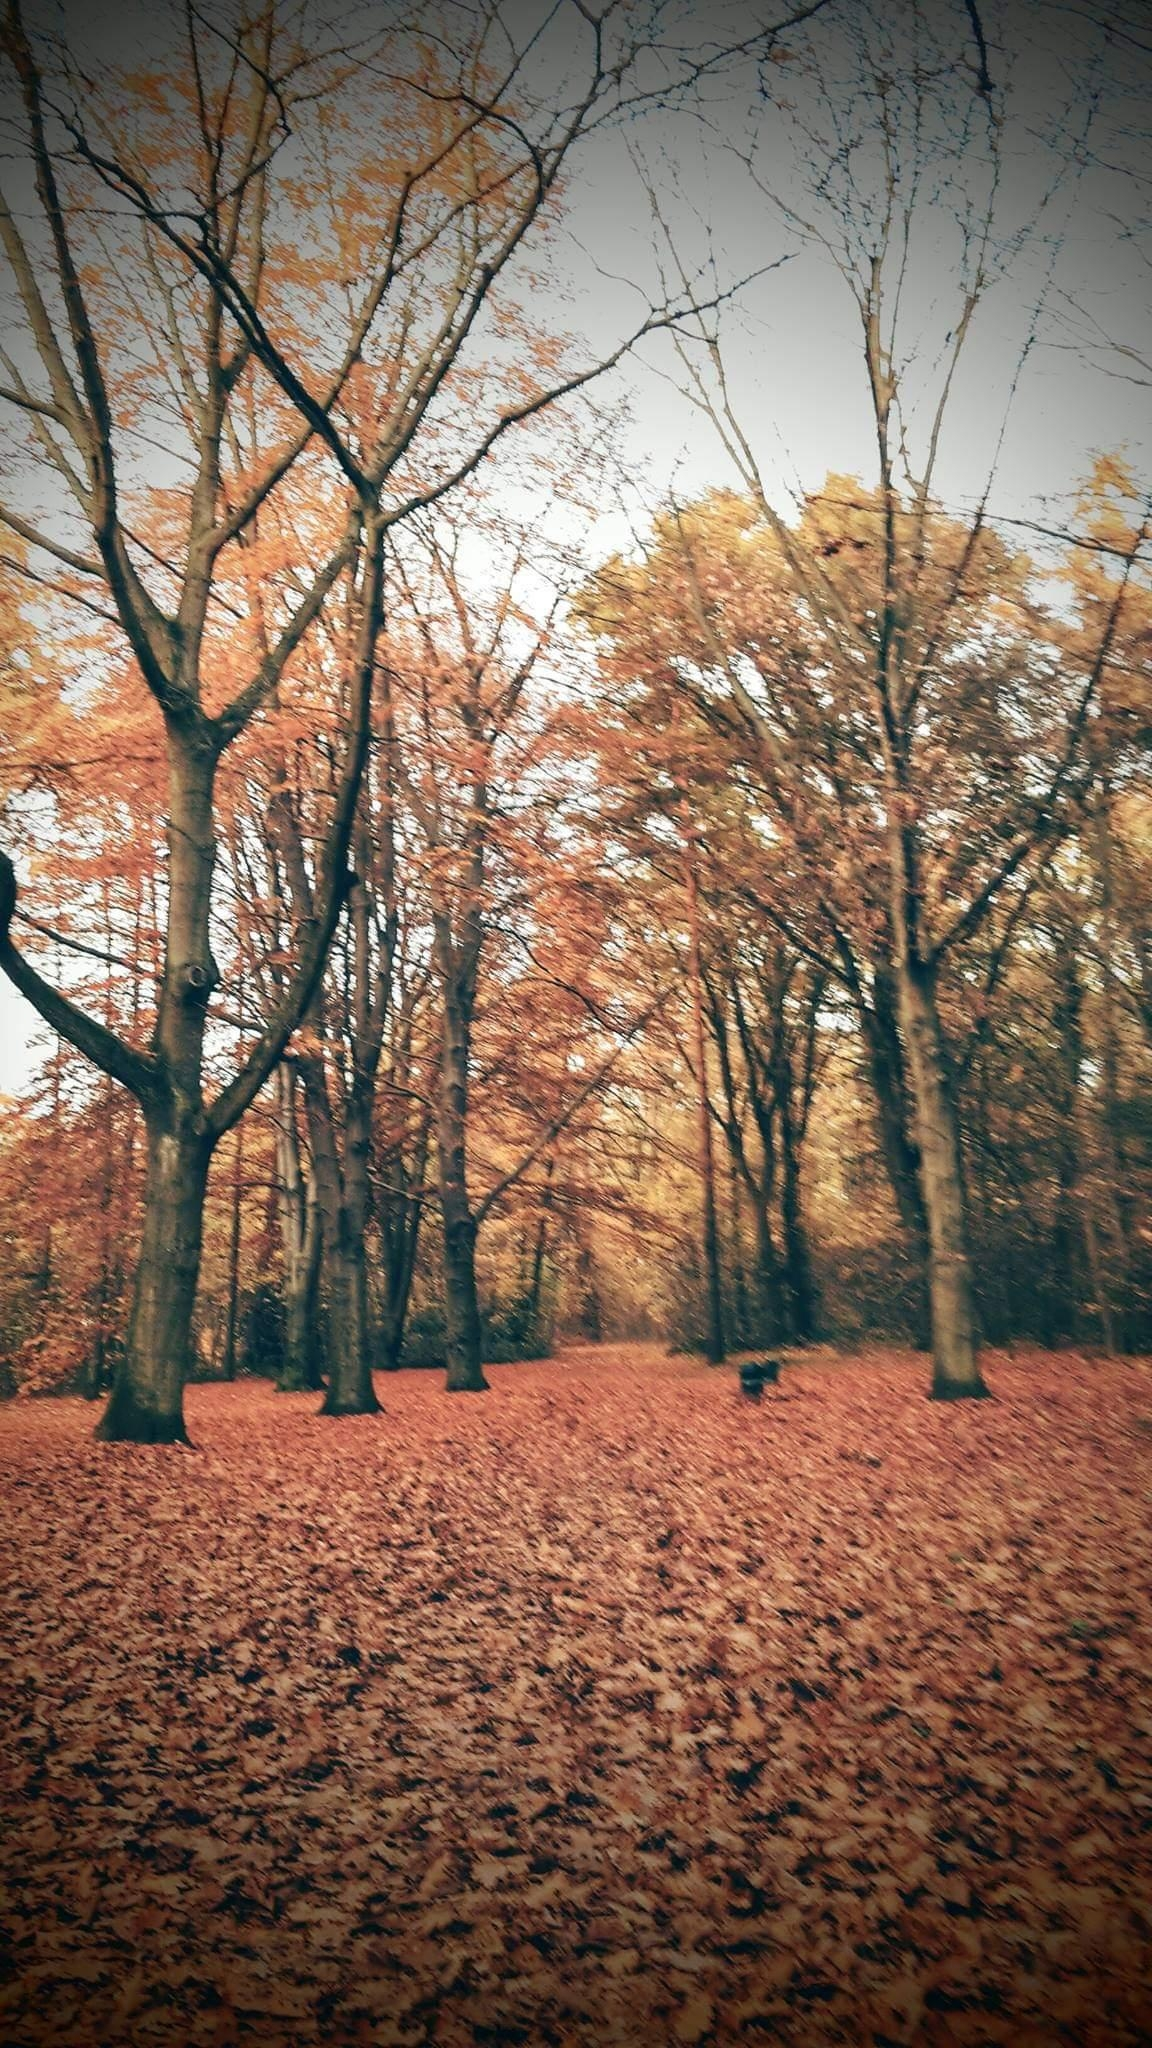 Herbstspaziergang im wald herbst wald spaziergang  7f677477 ab56 4e42 a61b 897f152e896f